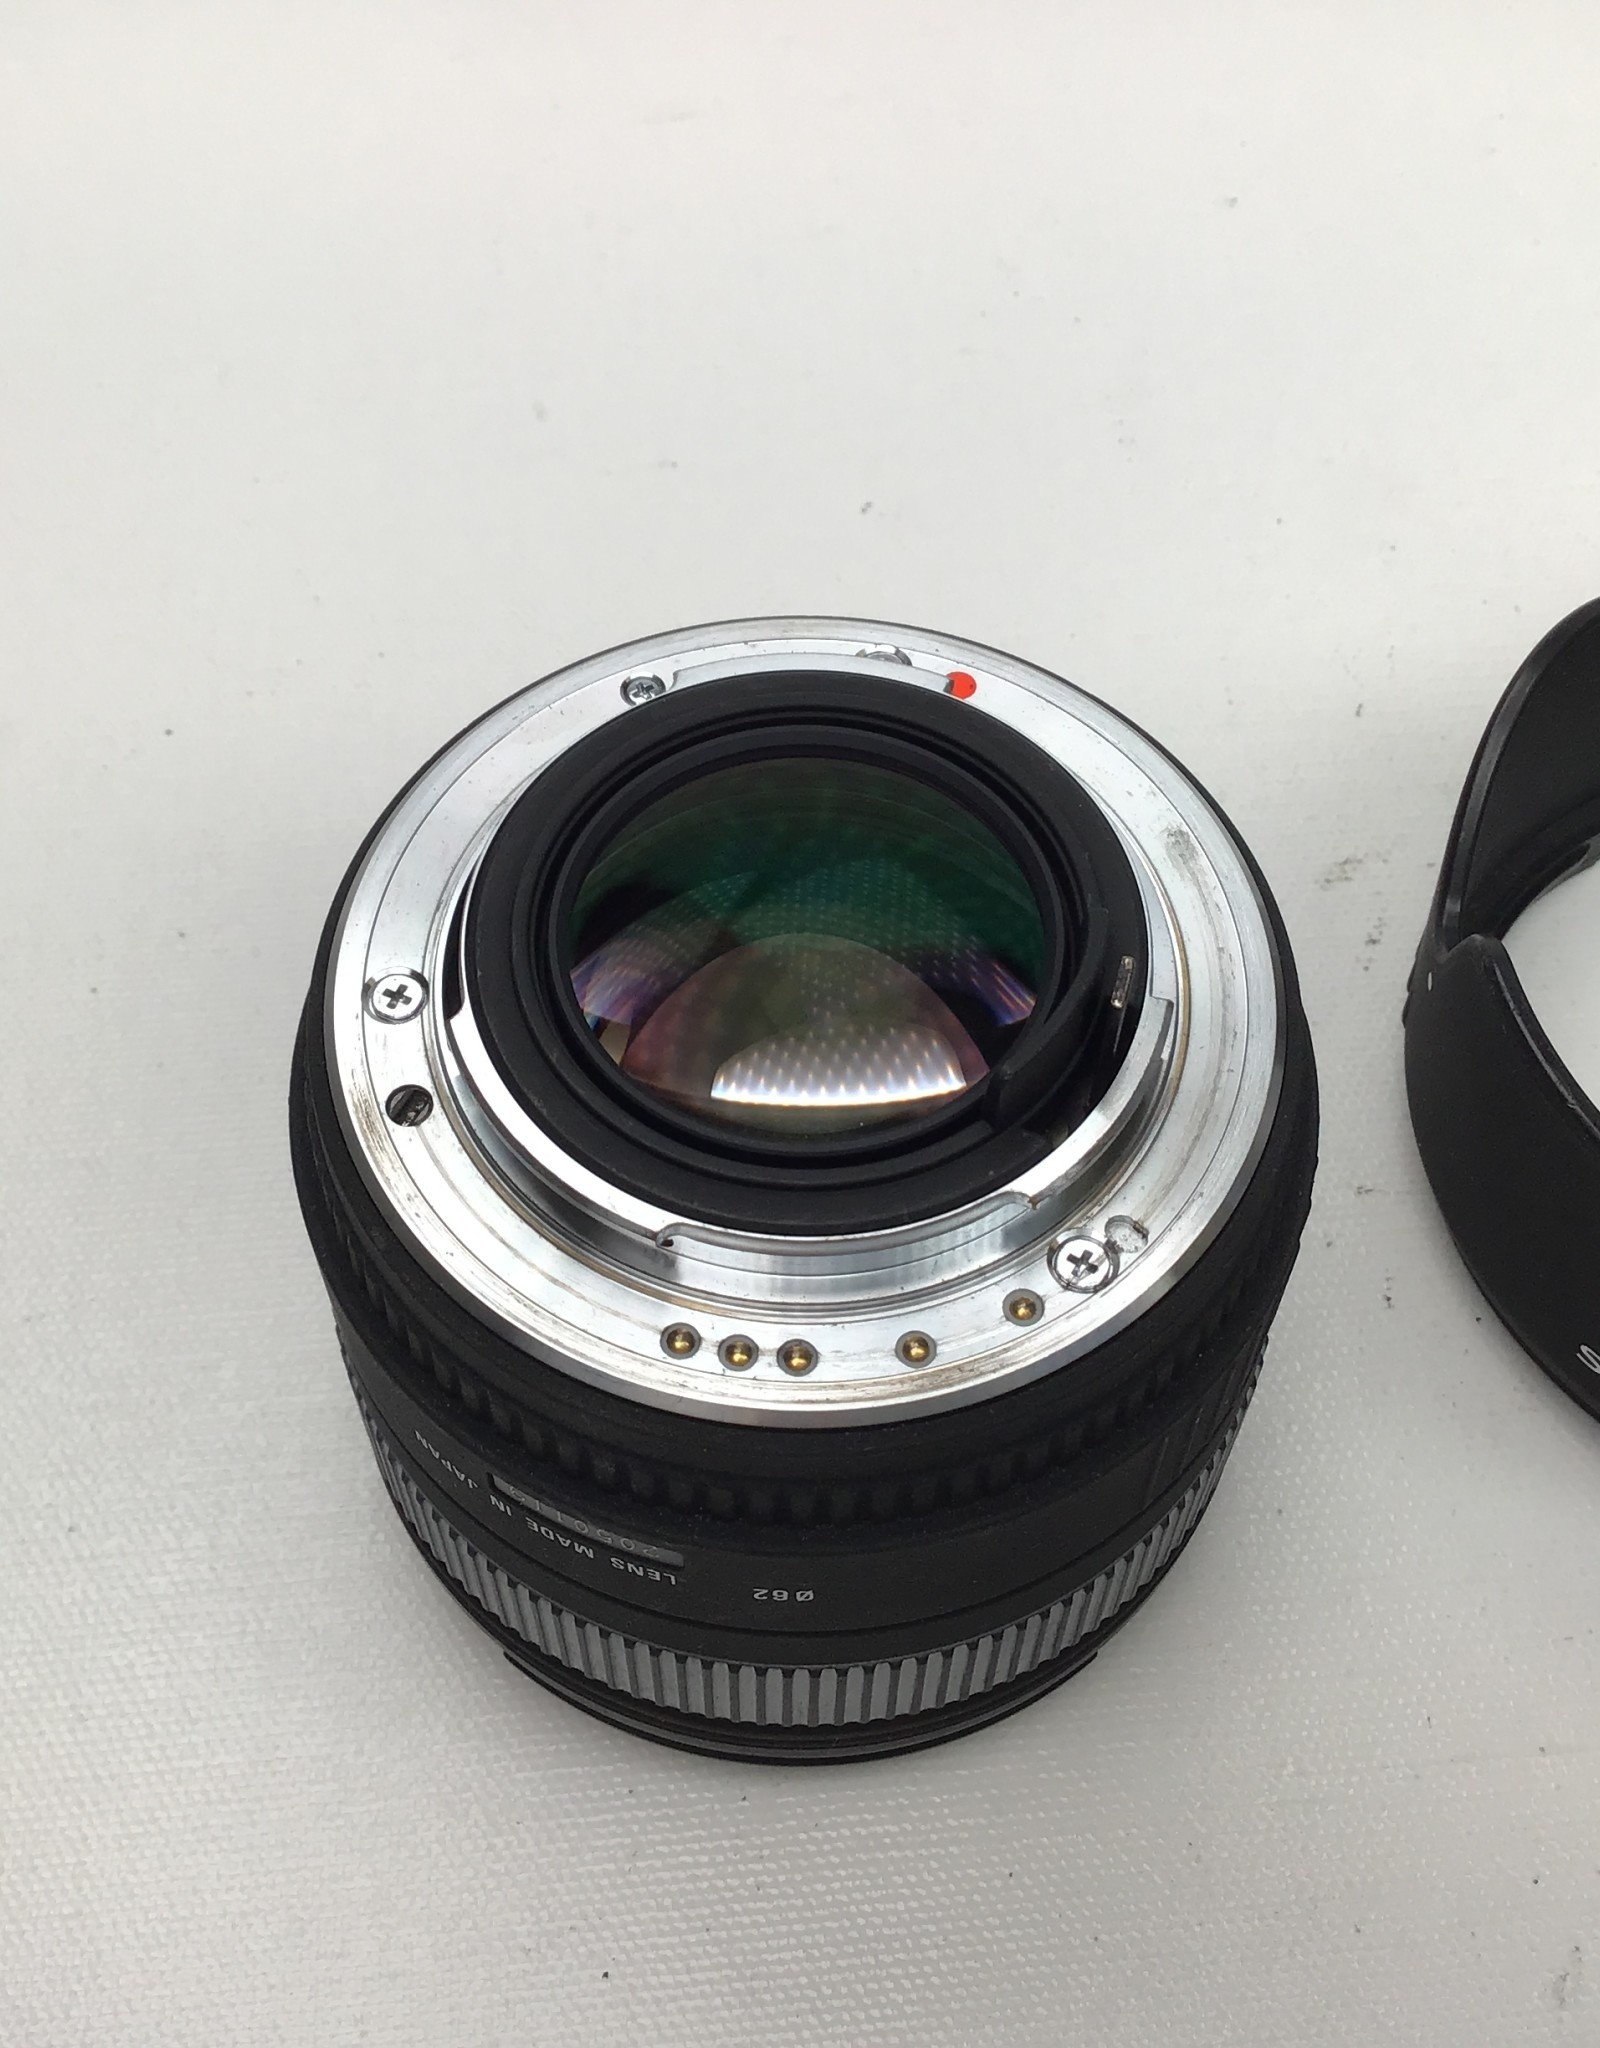 SIGMA Sigma 30mm f1.4 DC Lens for Pentax Used Good